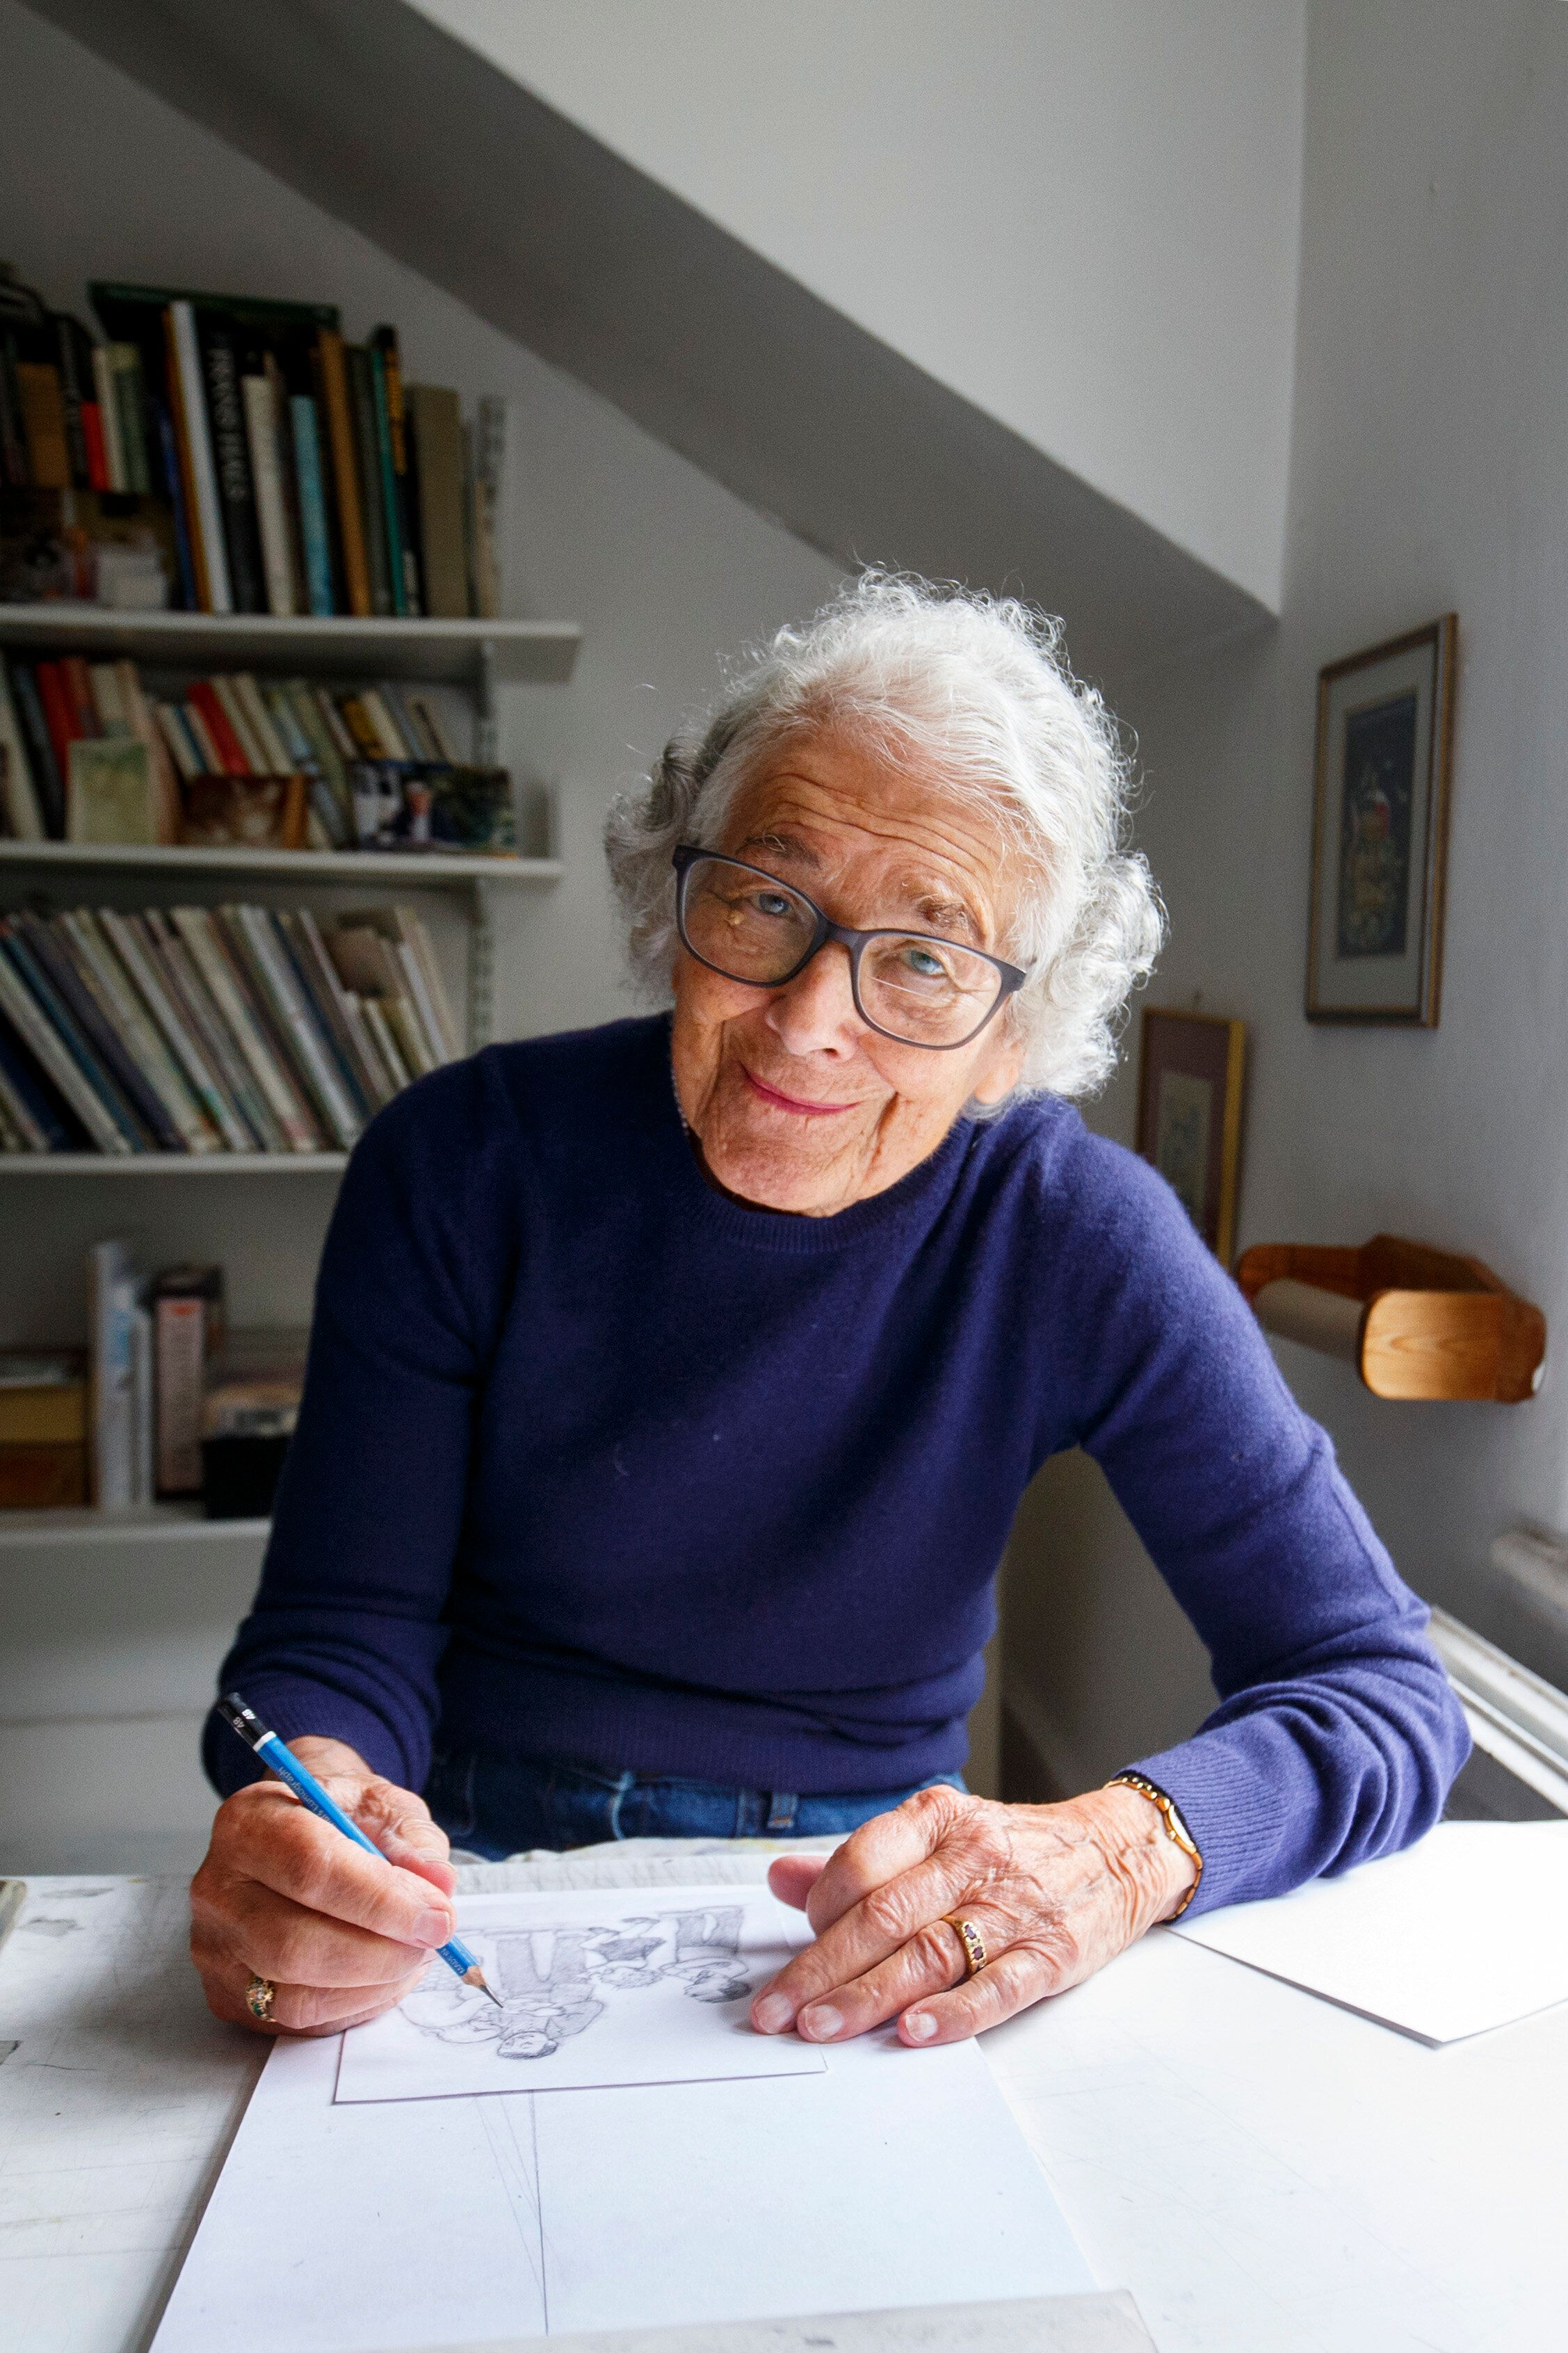 Judith Kerr, Author Of 'The Tiger Who Came To Tea,' Dies Age 95